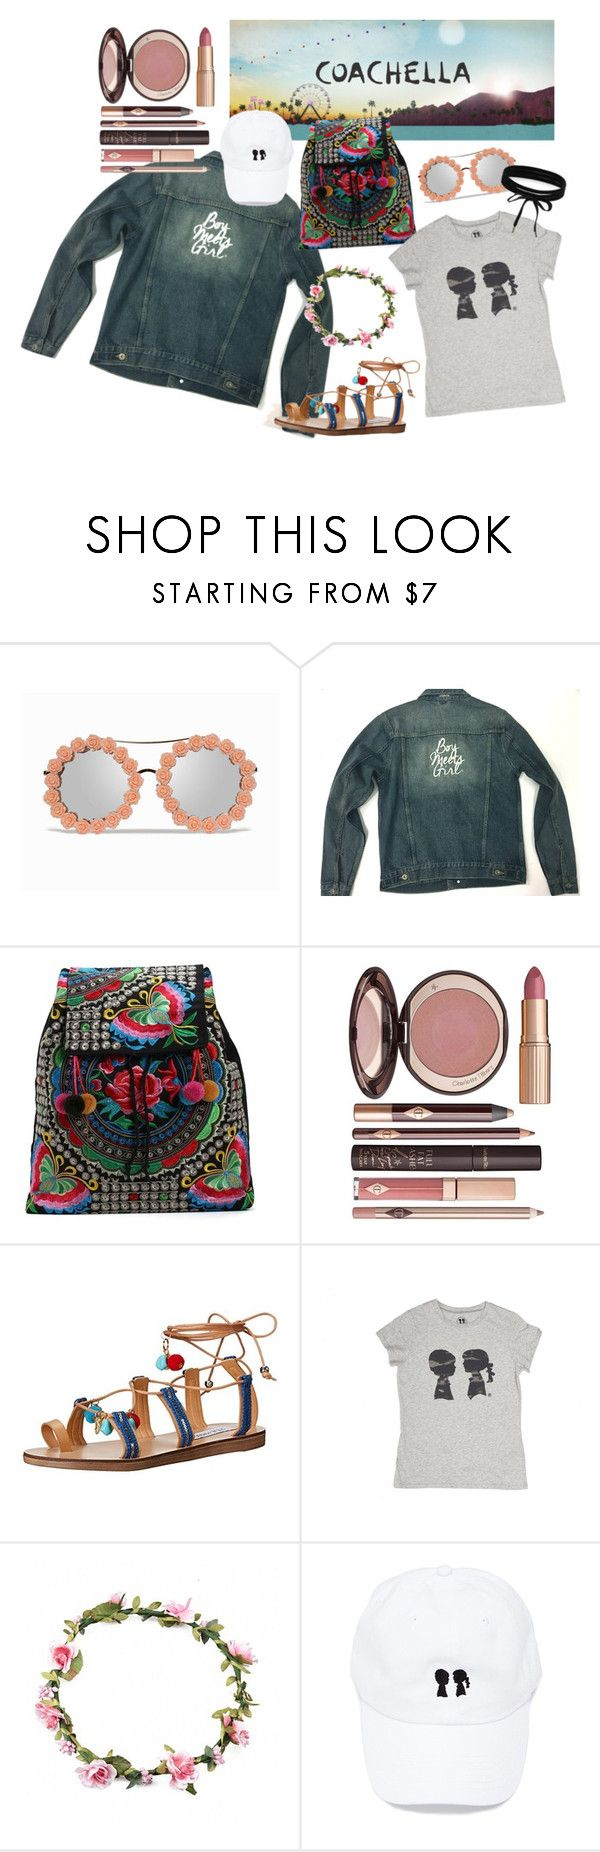 """Boy Meets Girl: Coachella 2017"" by boymeetsgirlusa ❤ liked on Polyvore featuring Charlotte Tilbury, Steve Madden and Boohoo"